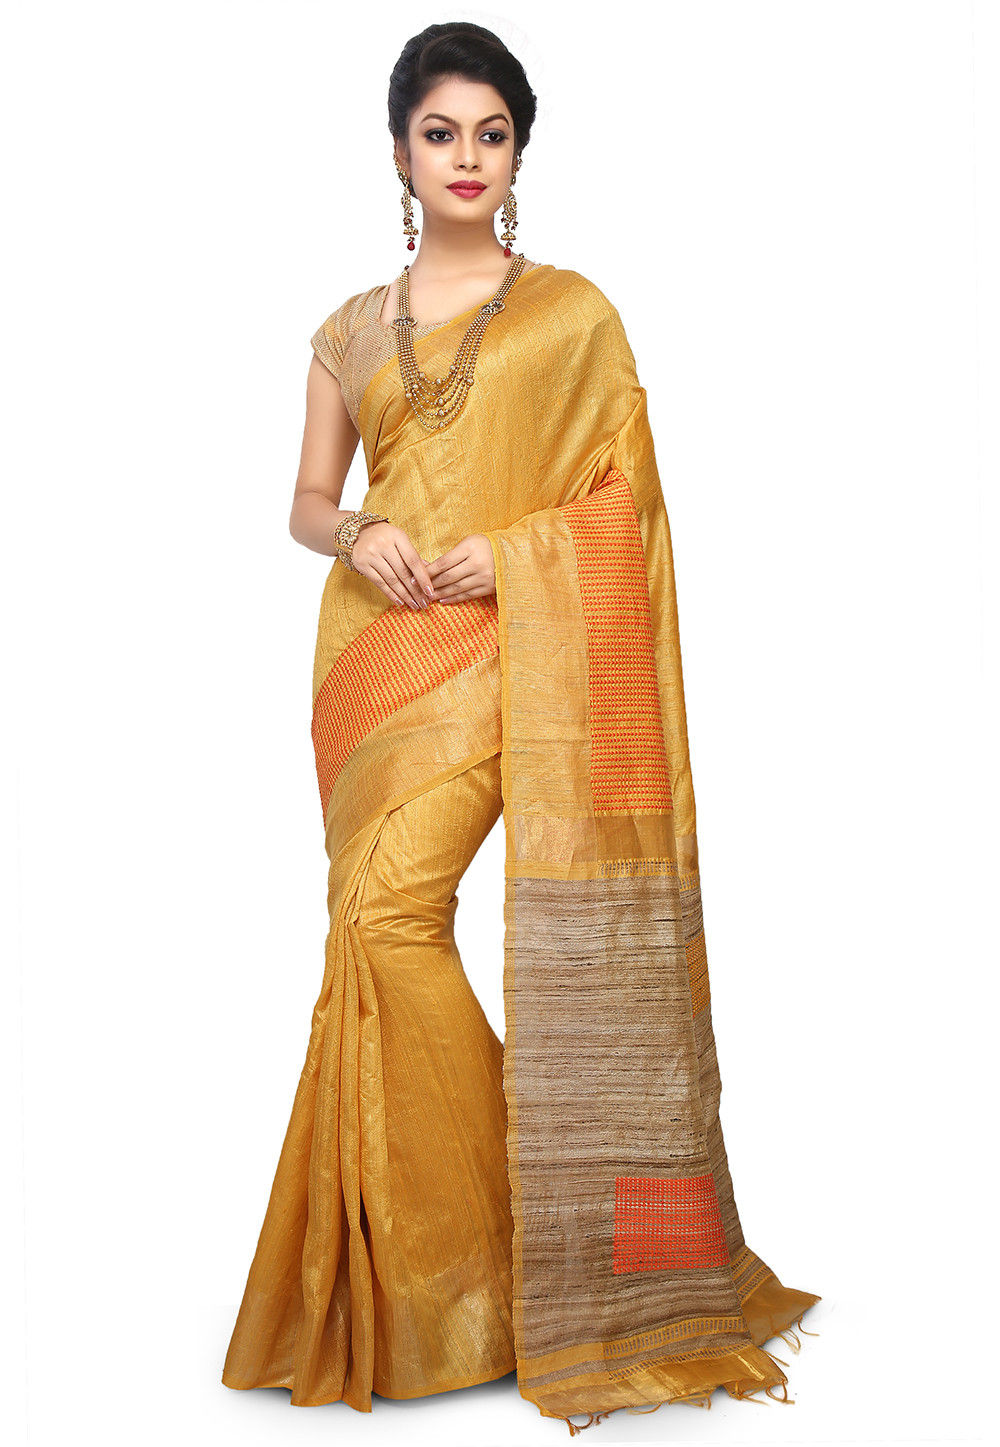 314987e9b5c2db Pure Dupion Silk Handloom Saree in Yellow   SBRA1306